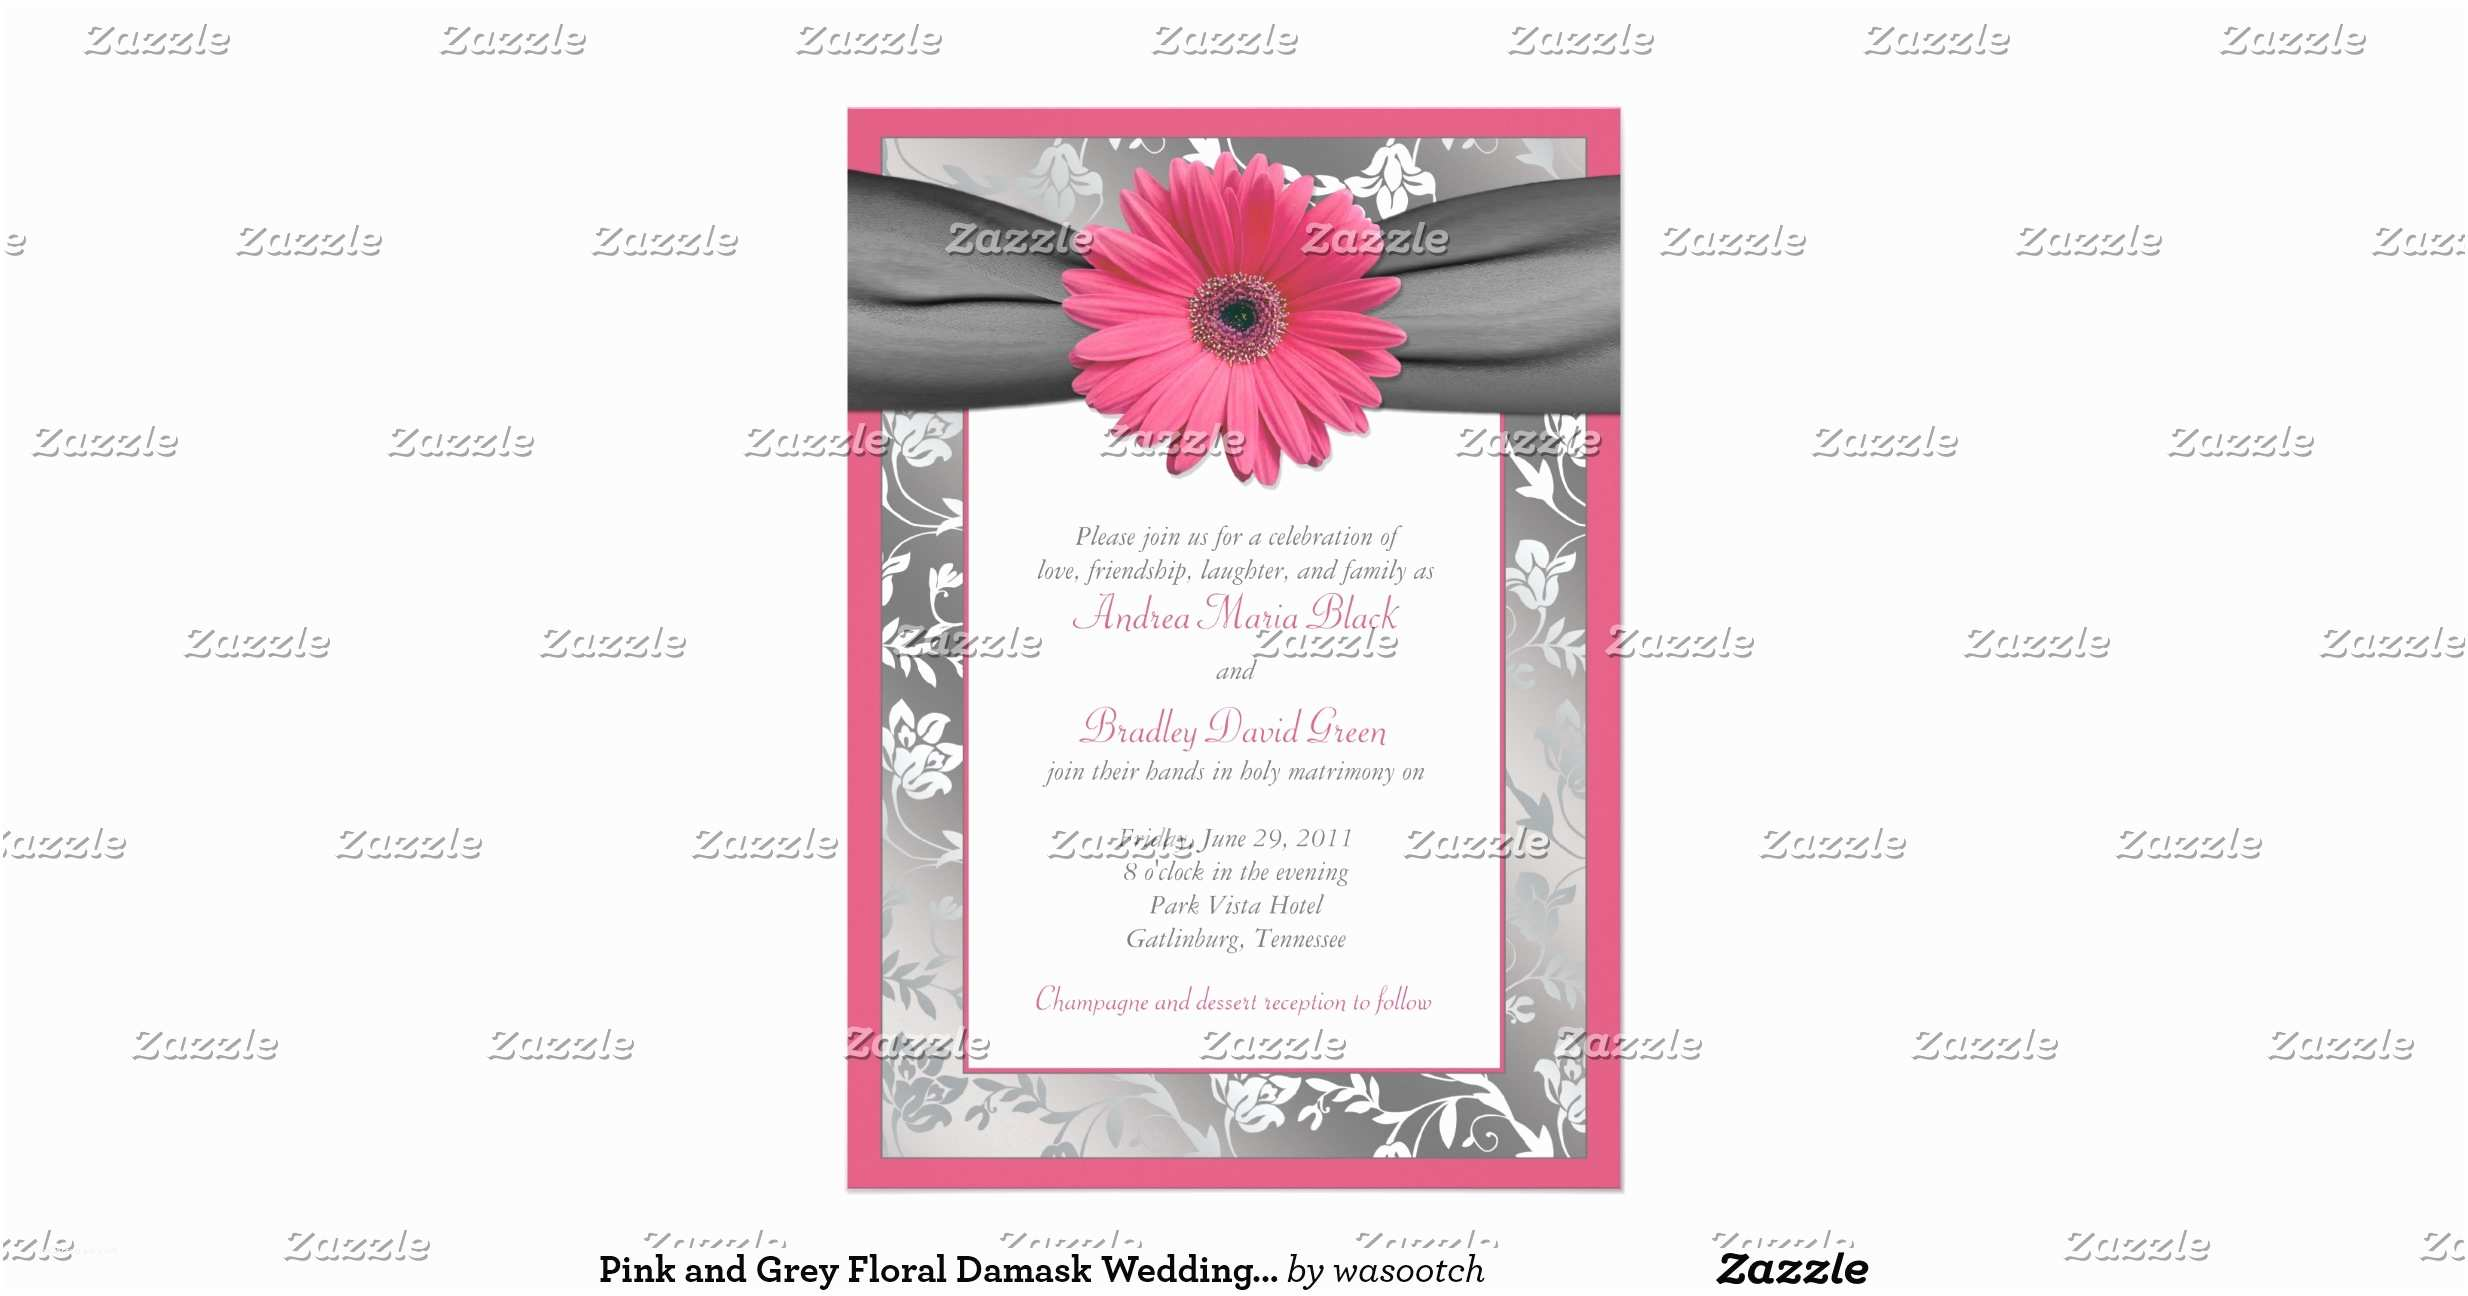 Pink and Gray Wedding Invitations Pink and Grey Floral Damask Wedding Invitation